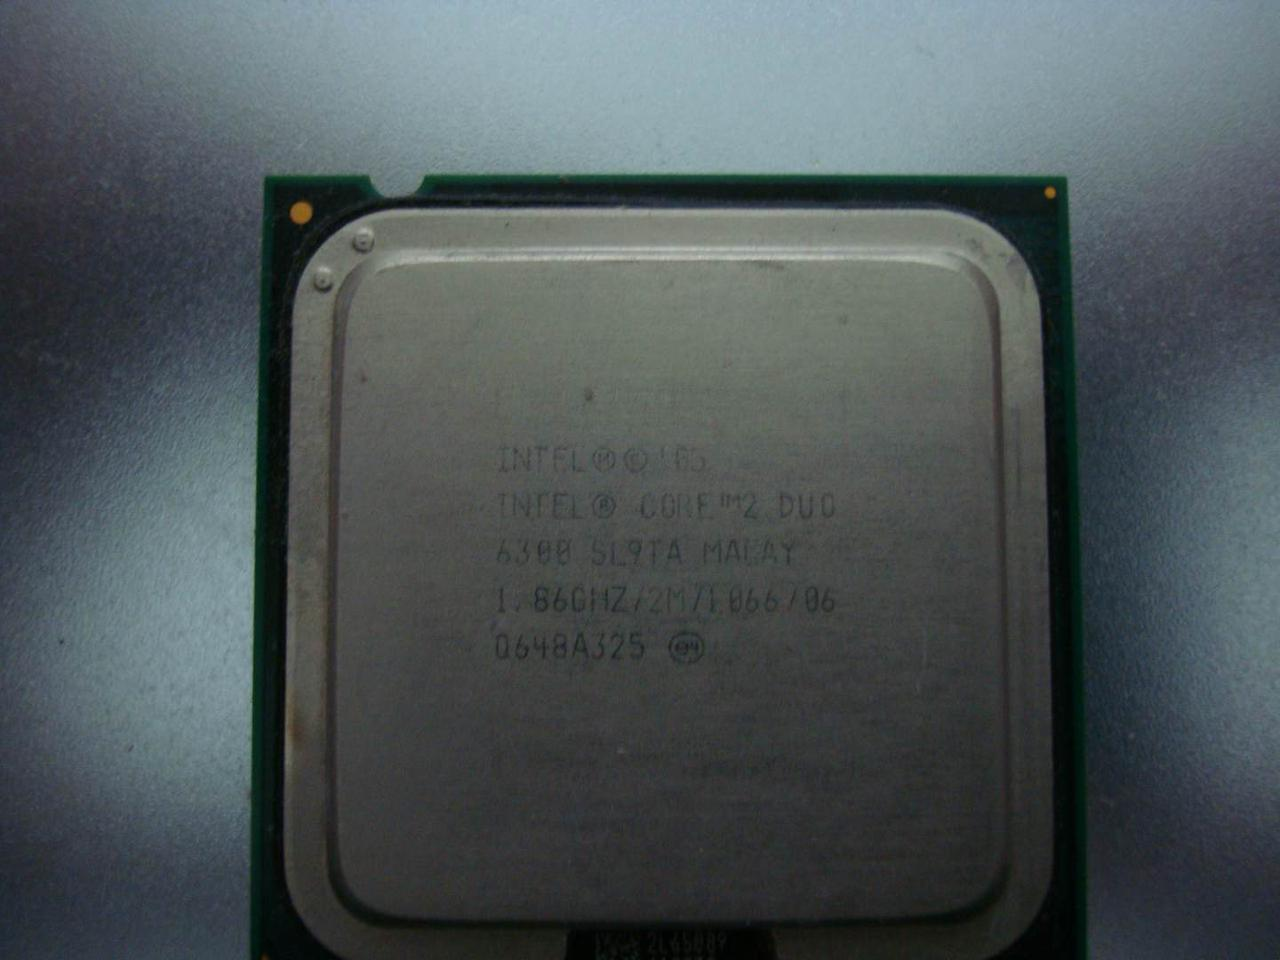 Двухъядерный процессор S775 Intel Core 2 Duo E6300 1.86GHZ